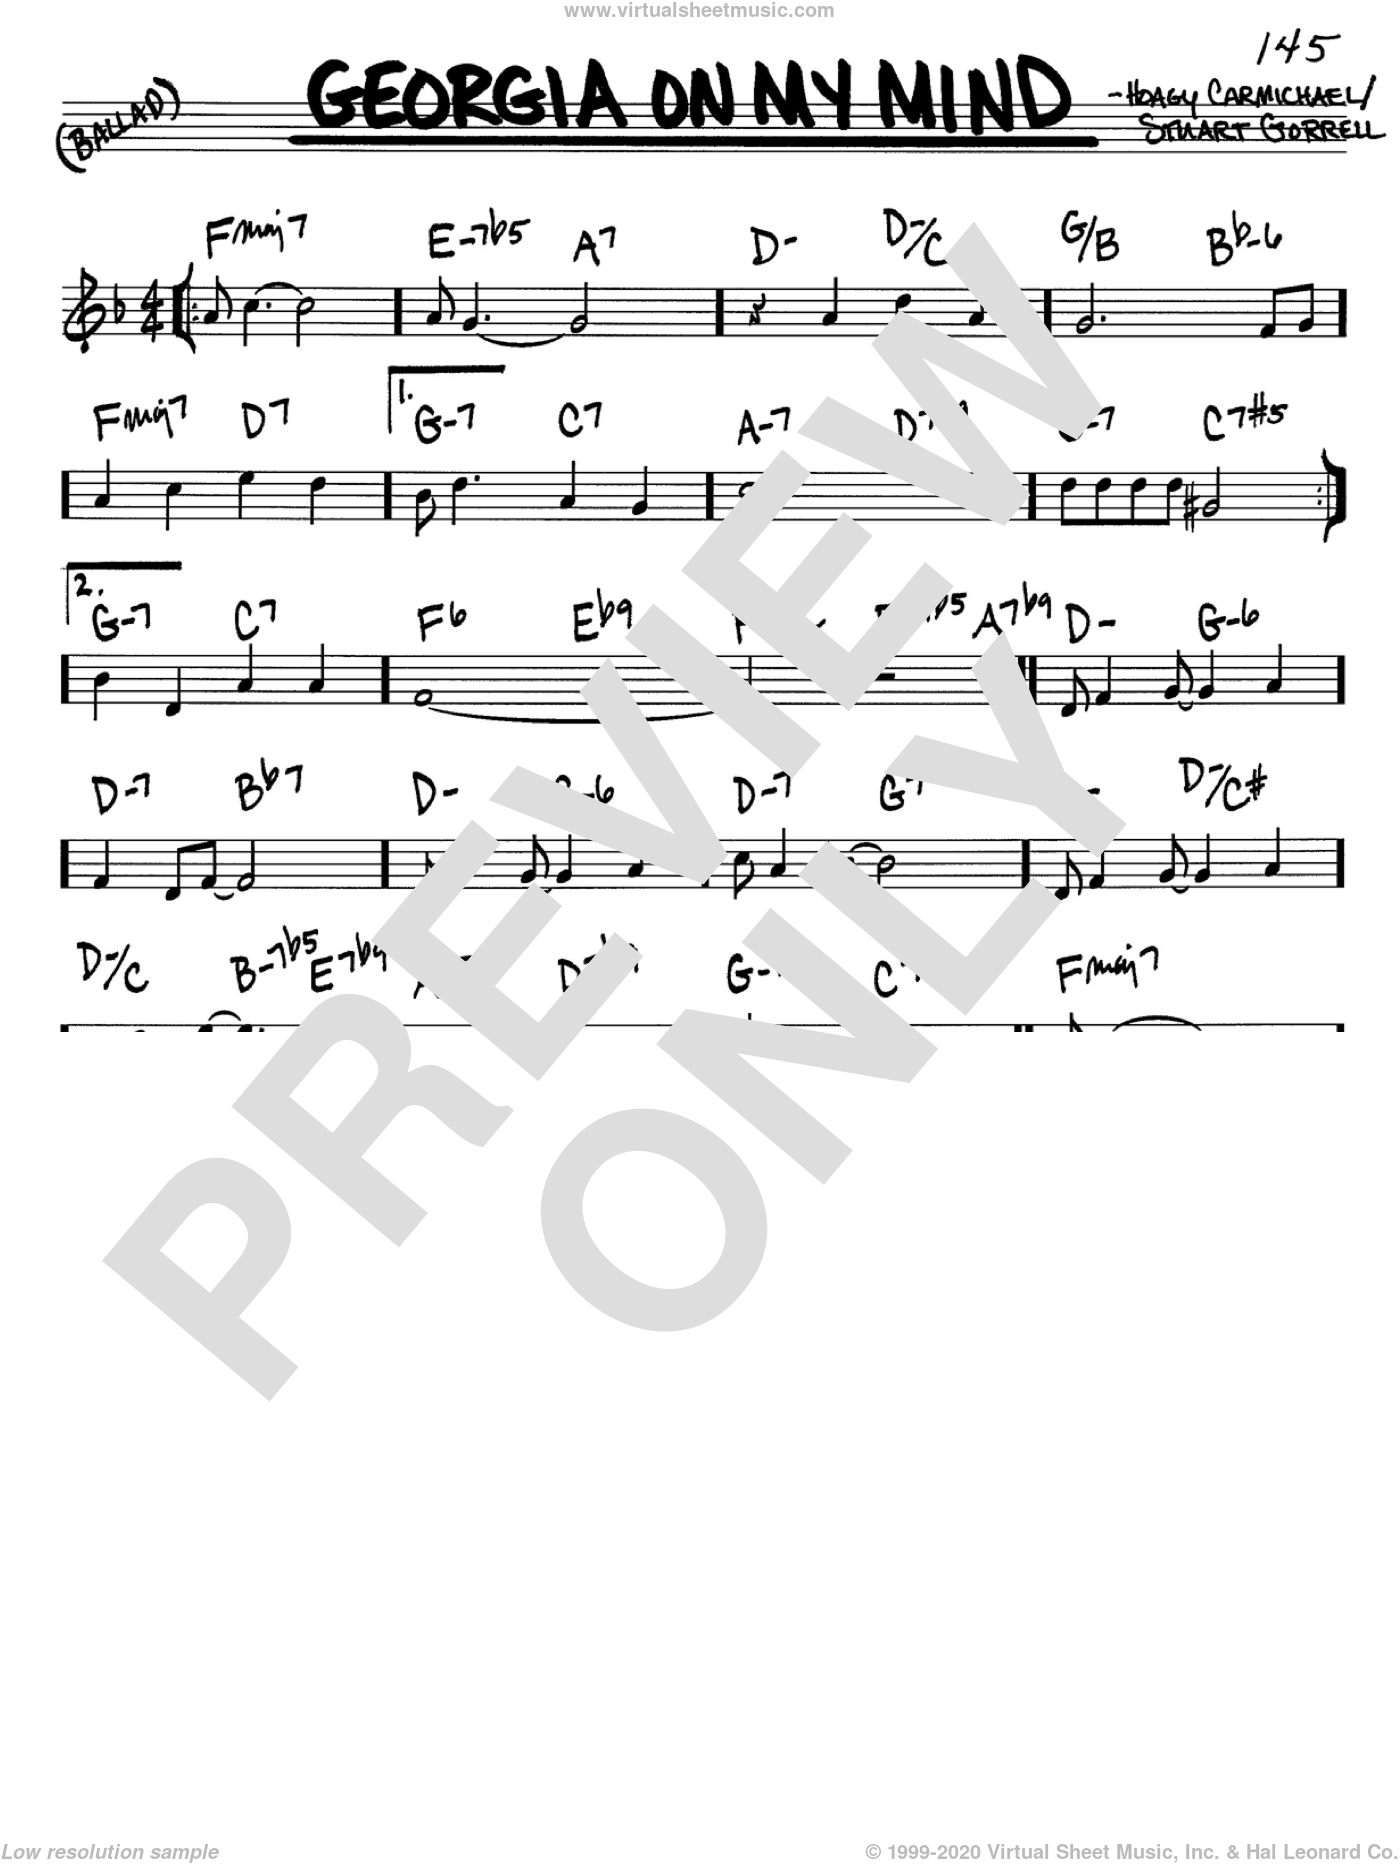 Georgia On My Mind sheet music for voice and other instruments (C) by Stuart Gorrell